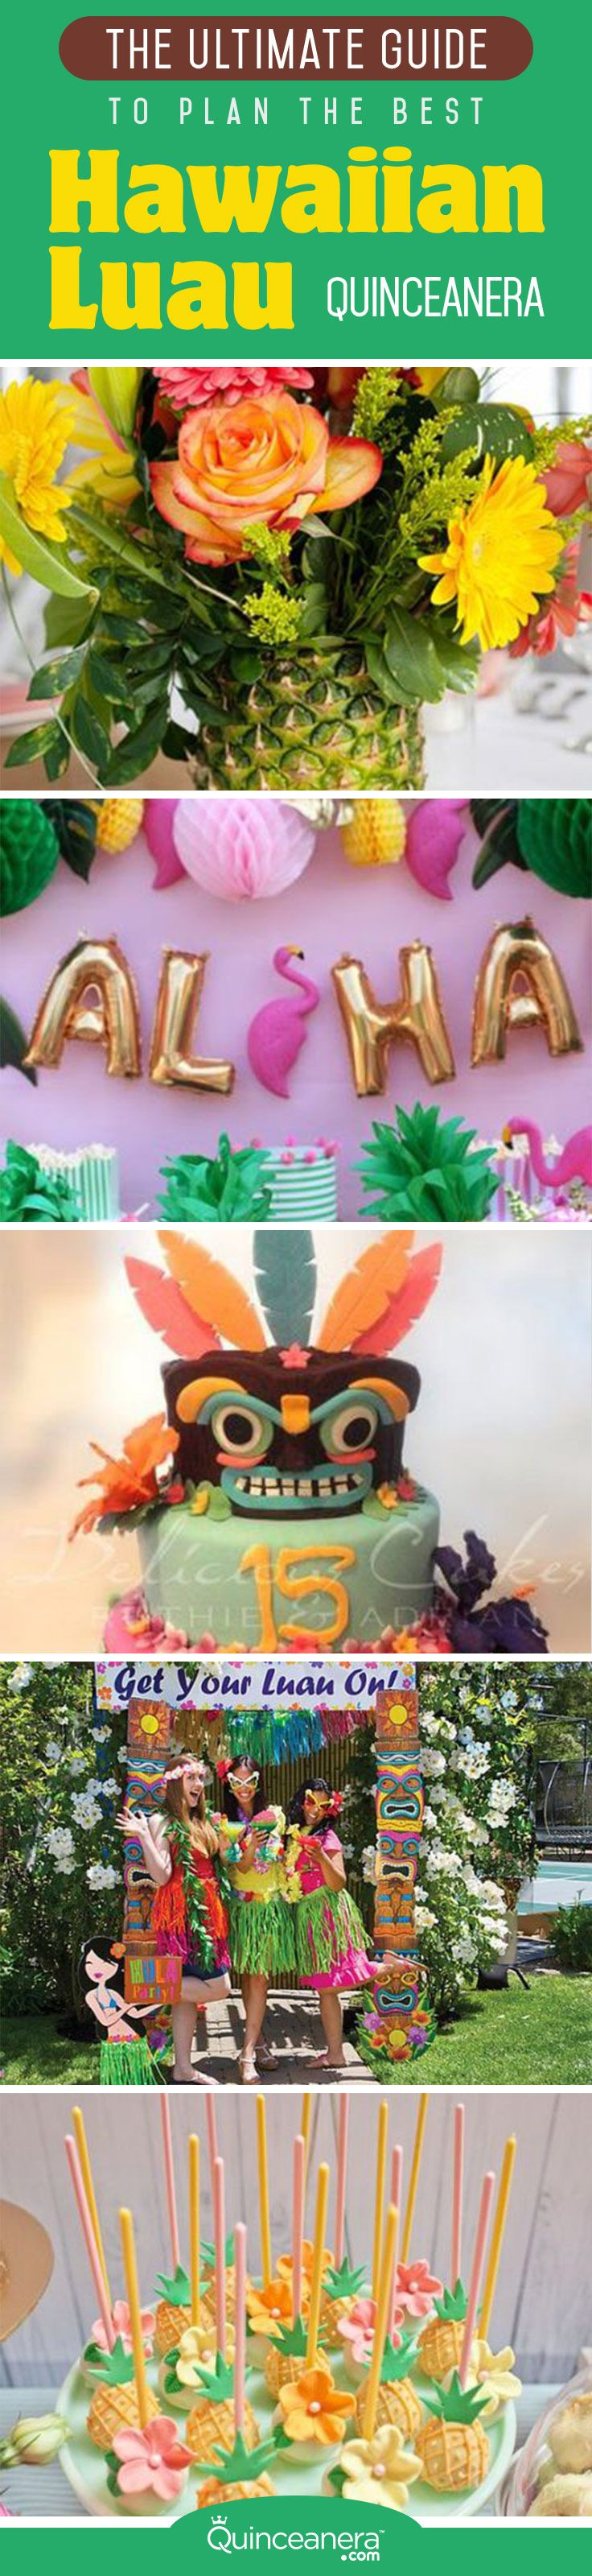 Say aloha to these bright ideas to plan a luau quinceanera! From dresses to cakes, find everything you need to transport your guests to a tropical paradise.